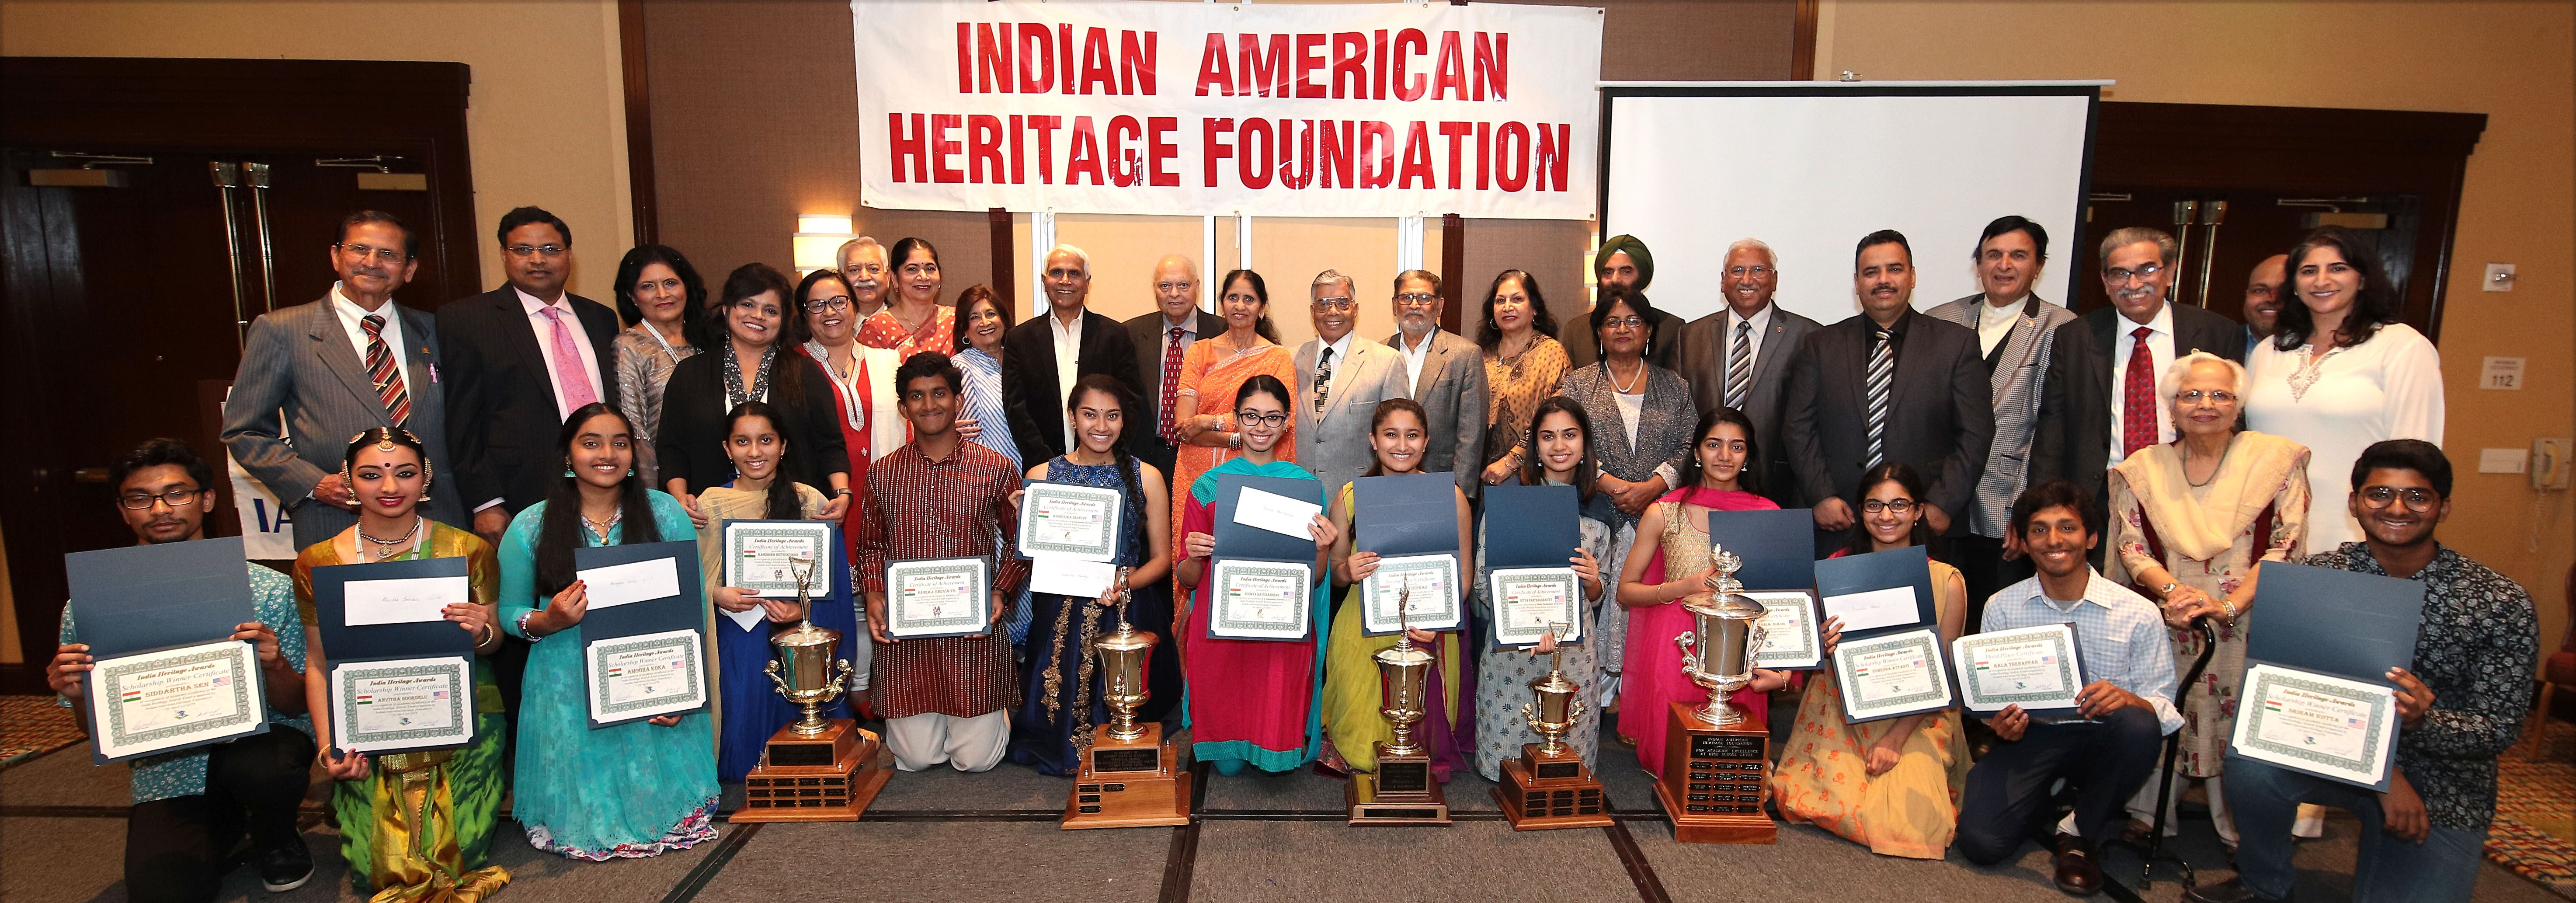 32nd India Heritage Awards Event